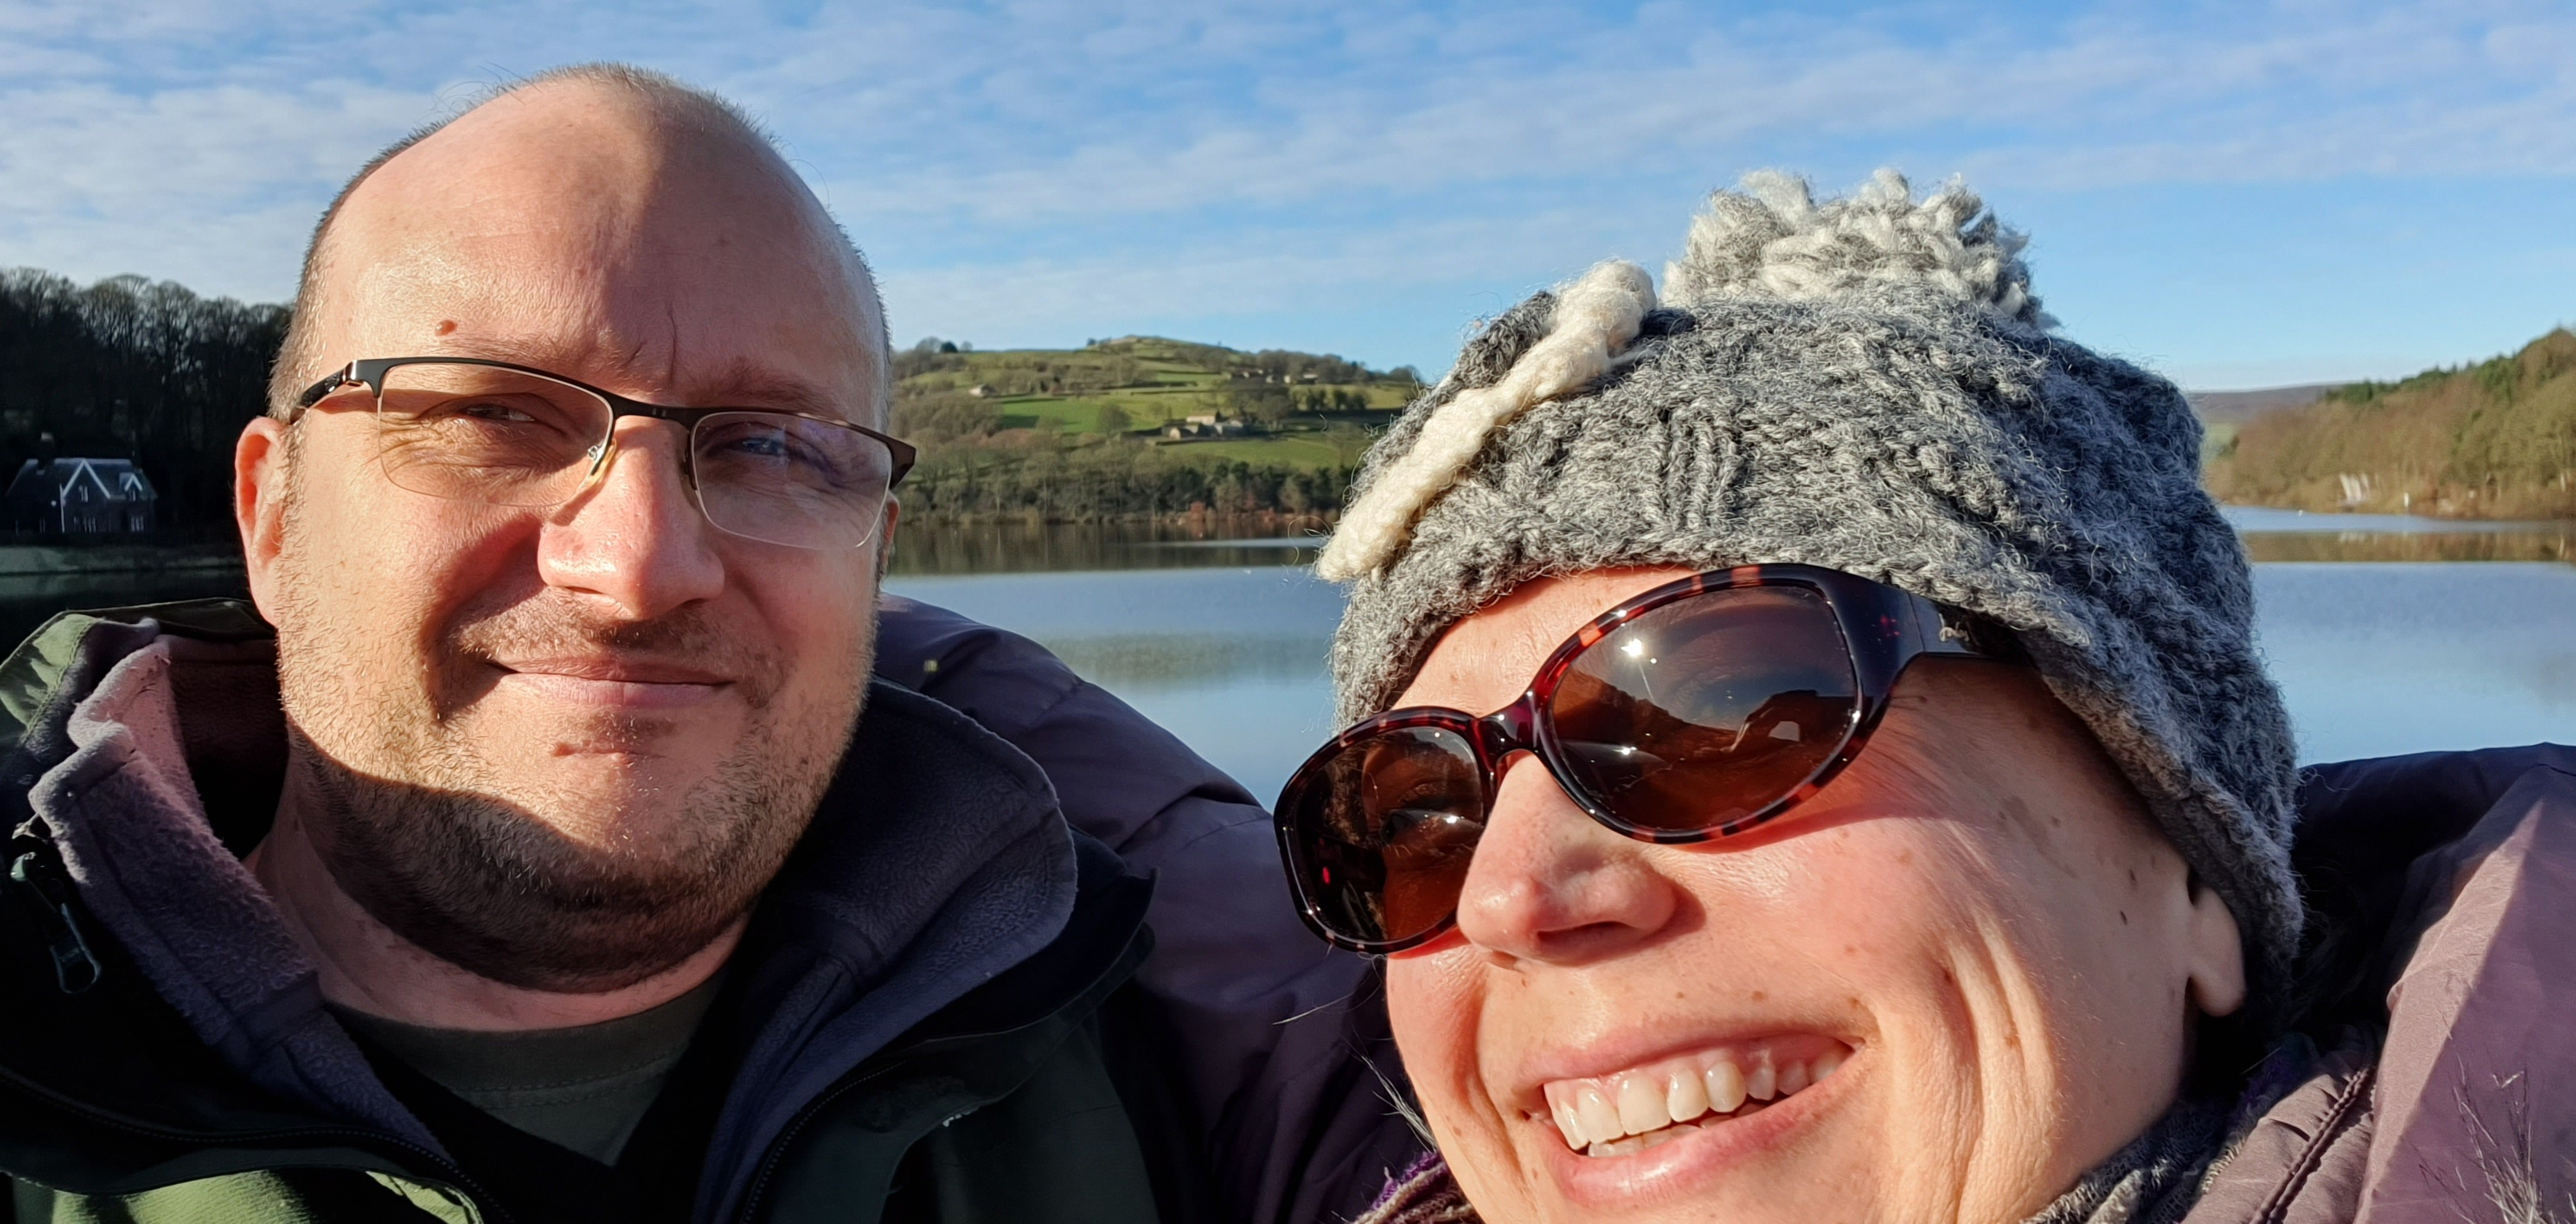 Me and my hubby at Damflask Reservoir